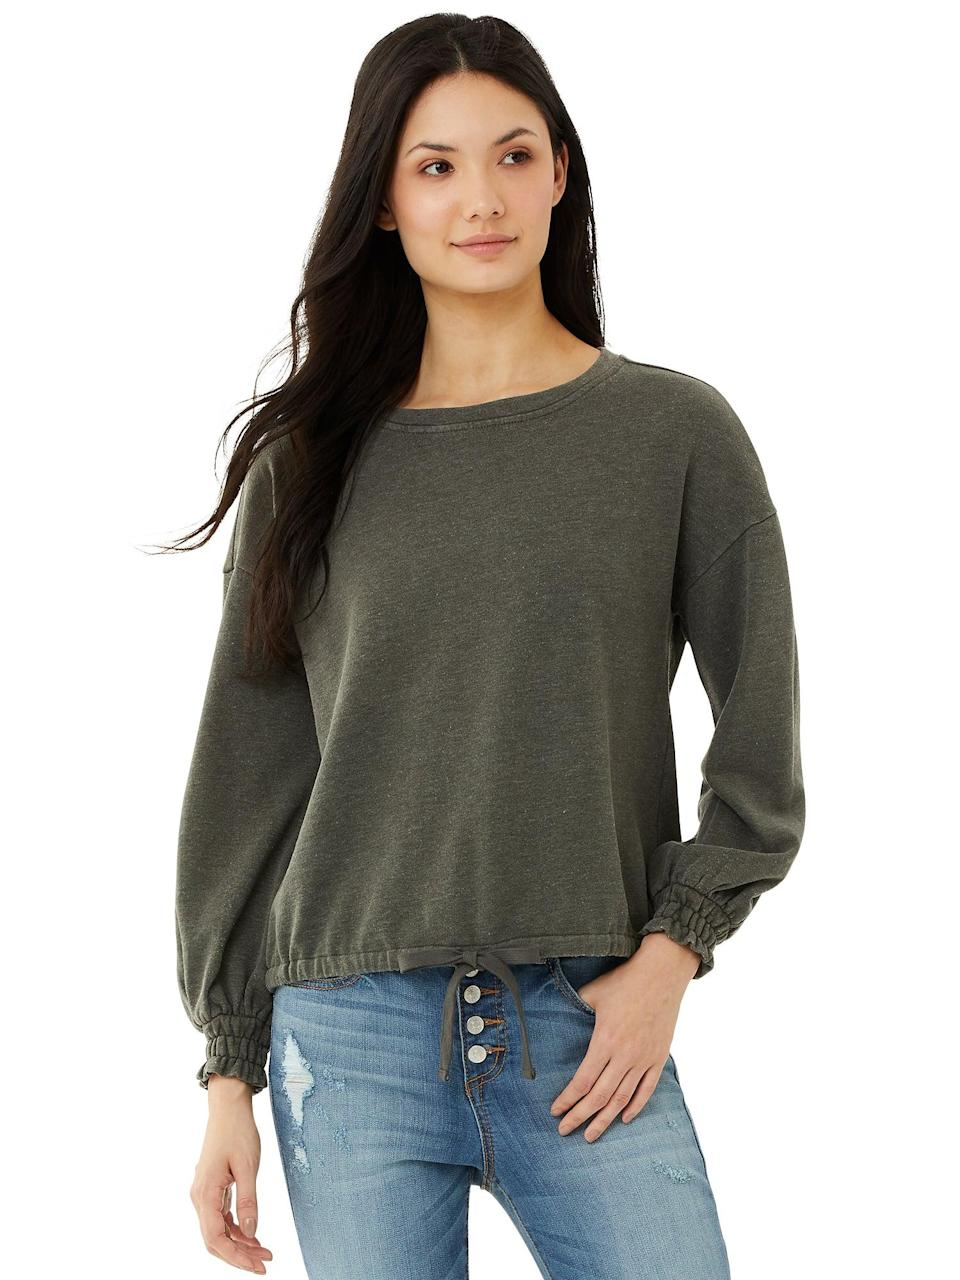 <p>The <span>Scoop Women's Round Neck Sweatshirt with Drawstring Waist</span> ($12, originally $28) is a great way to look put together while staying casual.</p>